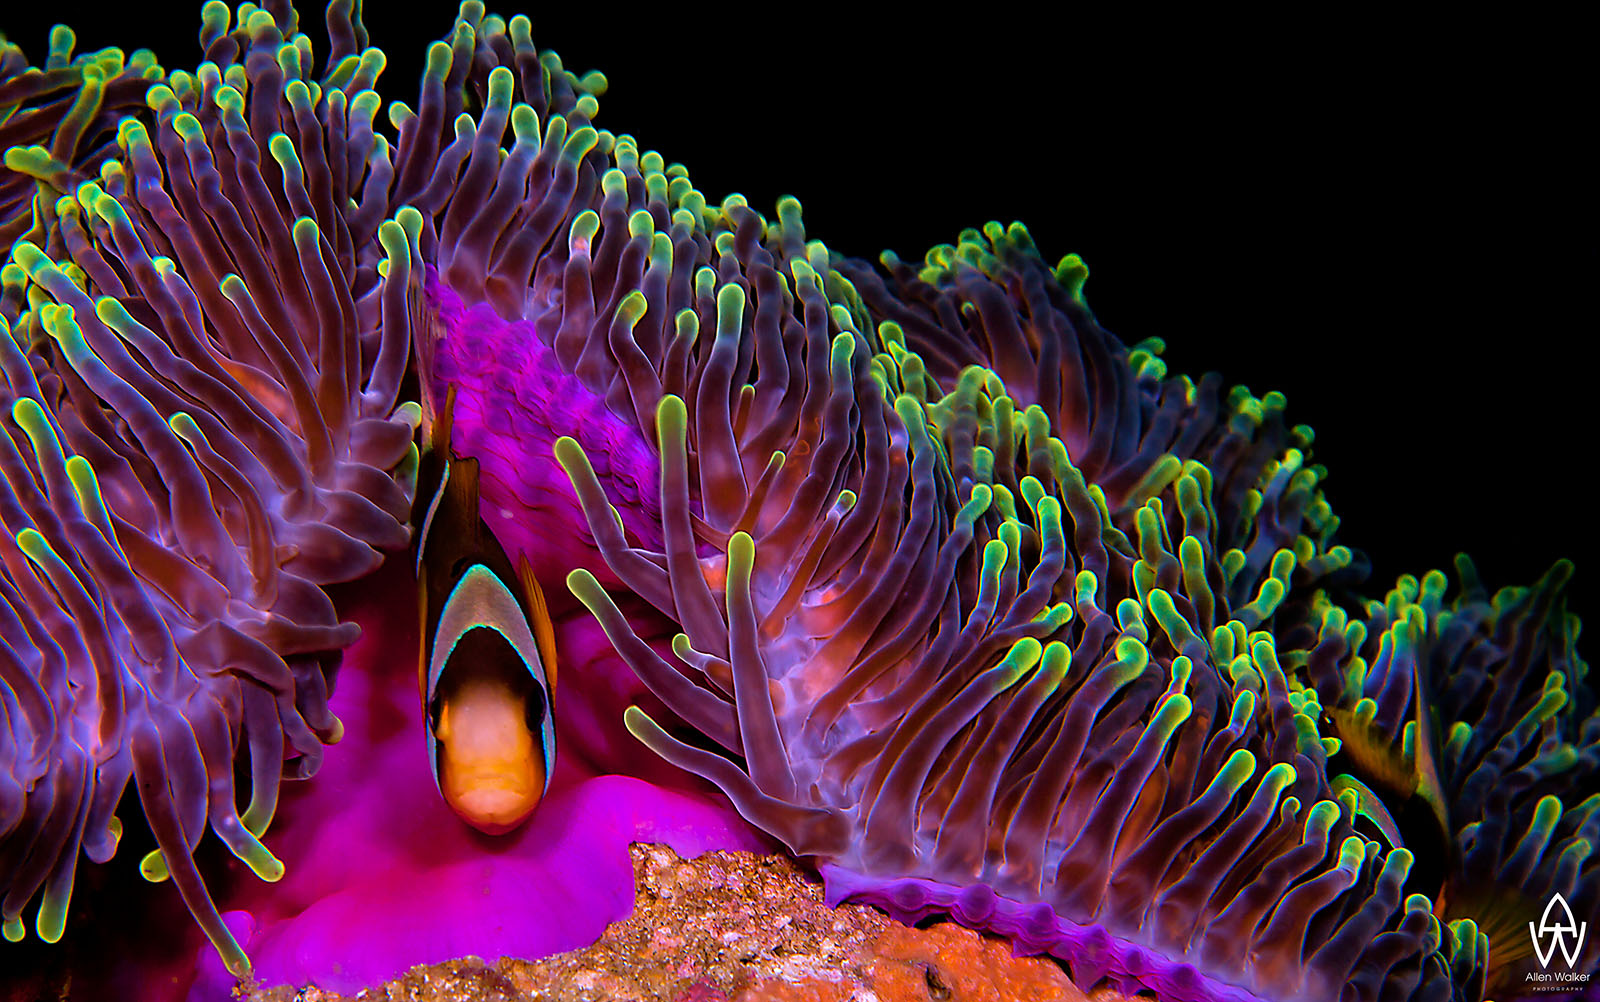 © Allen Walker | Home A Twobar Anemonefish using his host for protection showing off the amazing colours of them both in the process